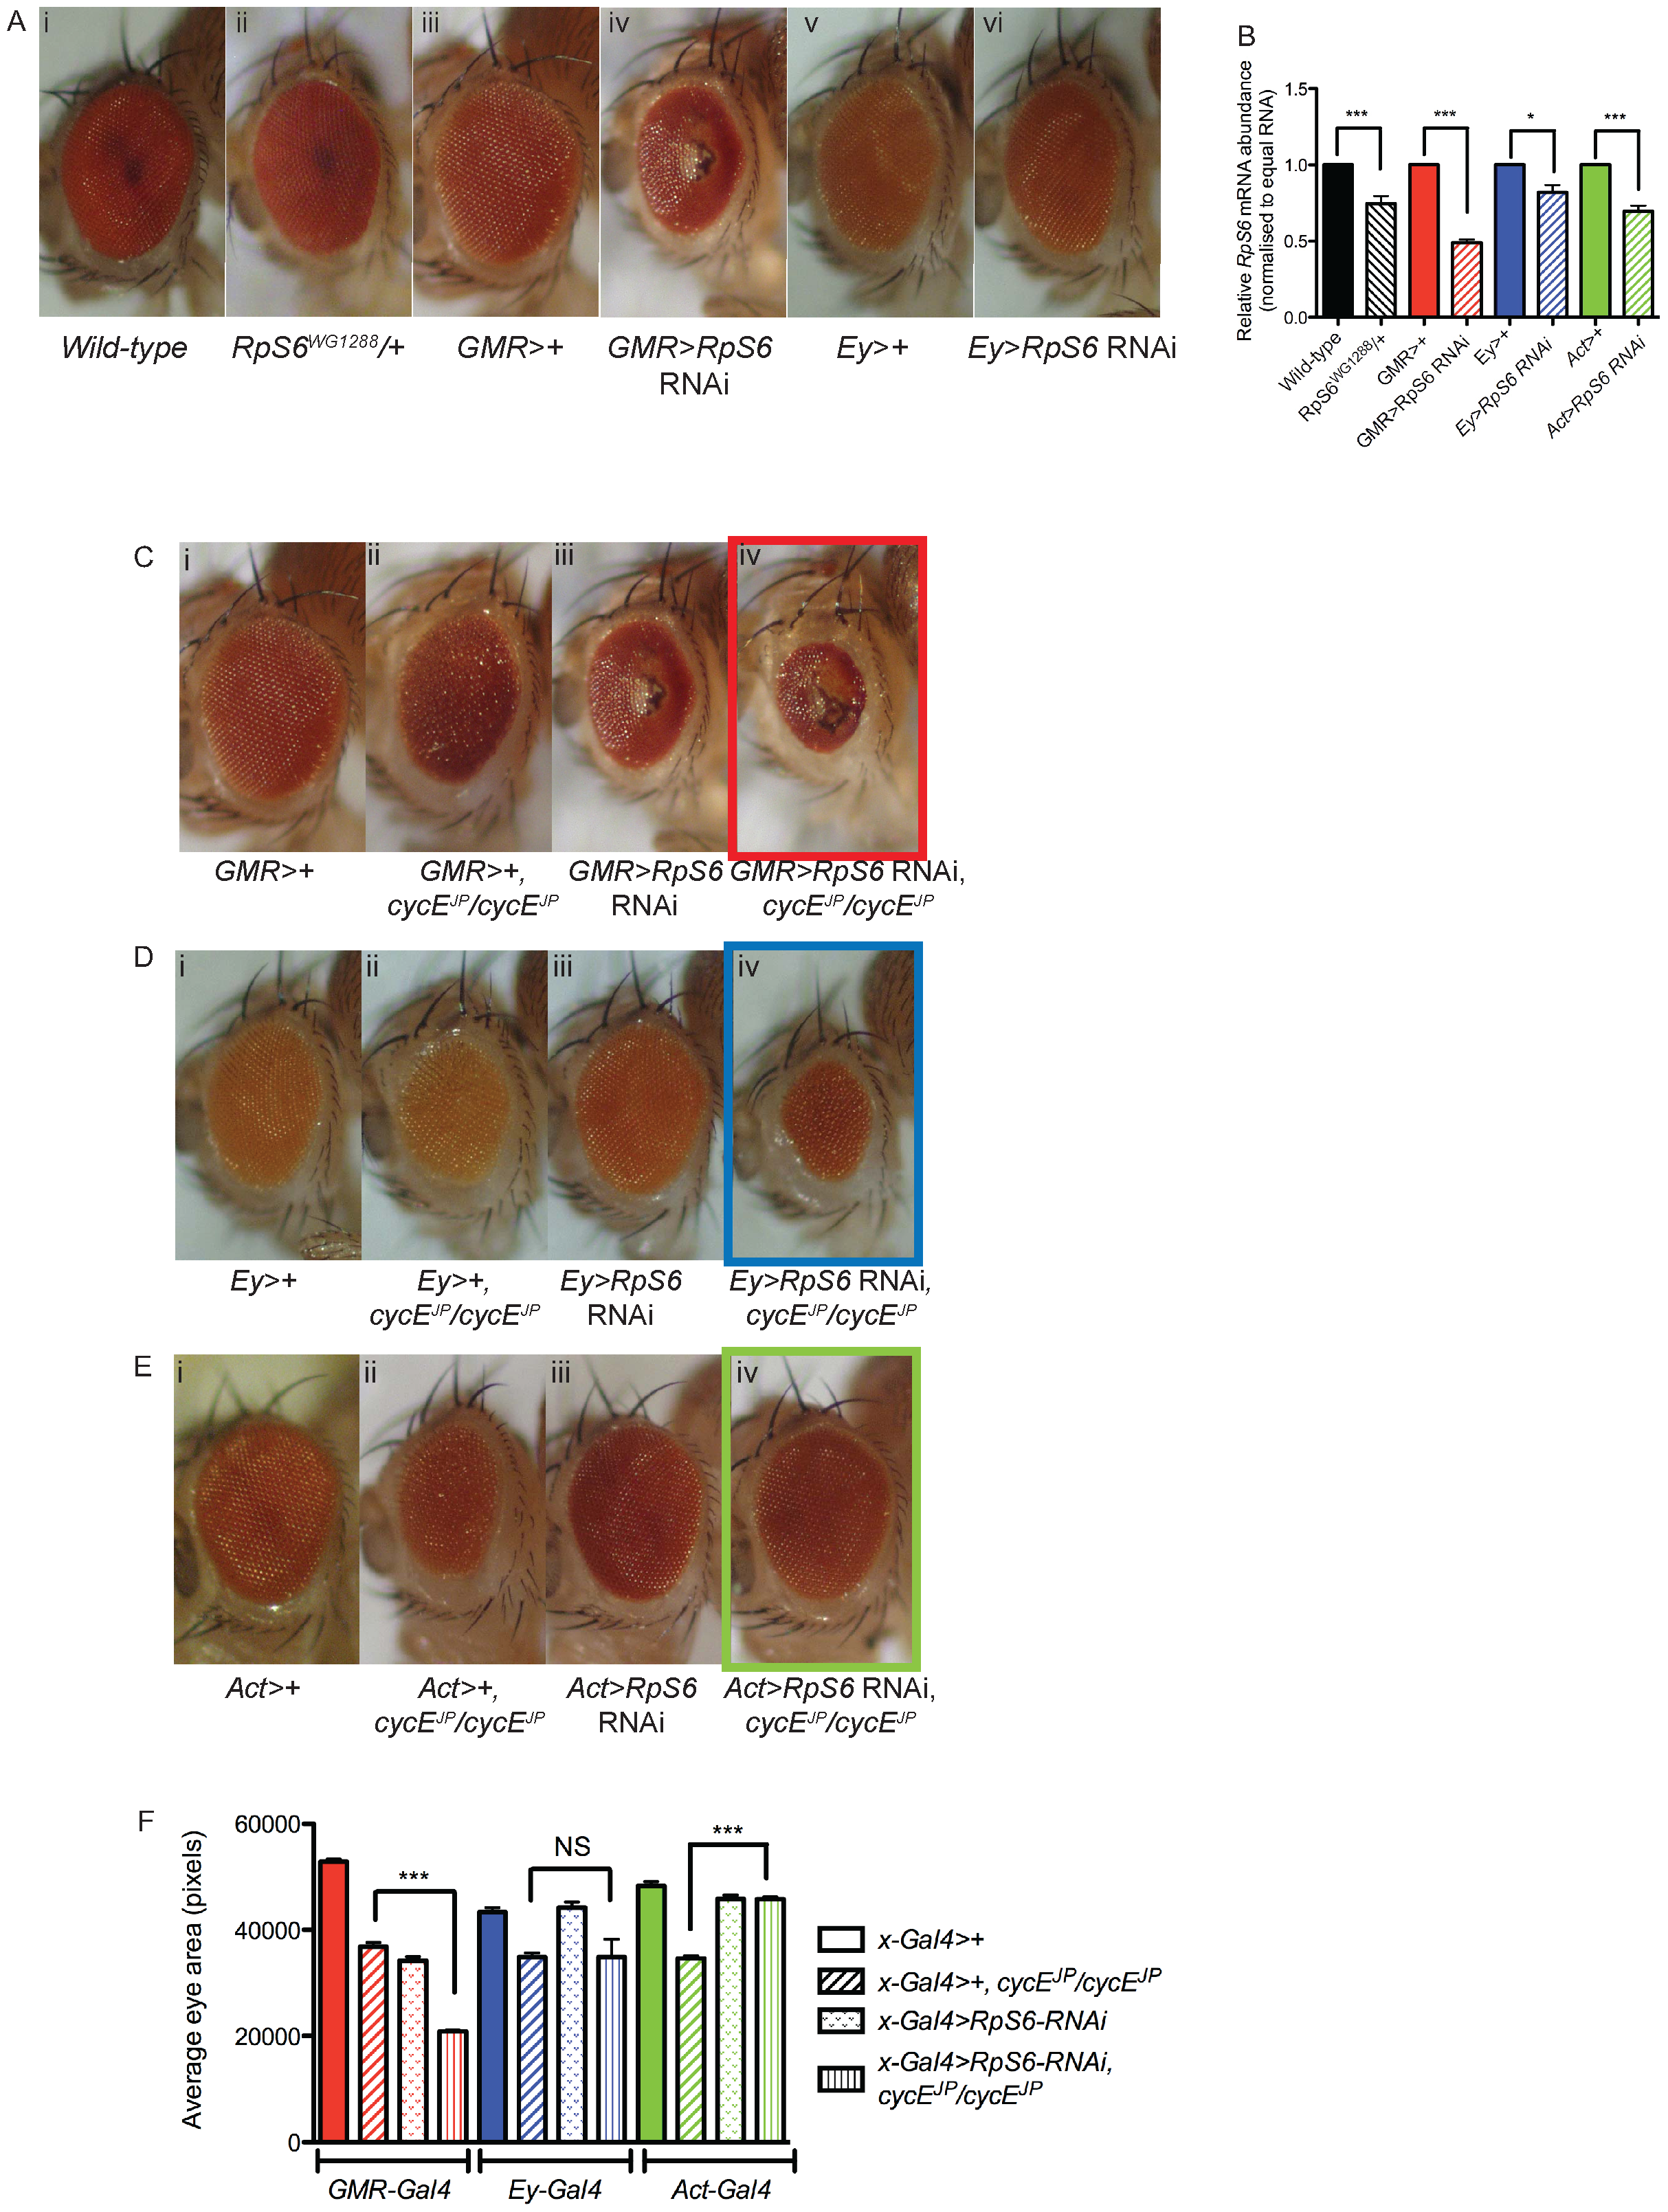 Reducing <i>RpS6</i> by RNAi in the whole fly, but not specifically in the eye, suppresses <i>cycE<sup>JP</sup></i>.